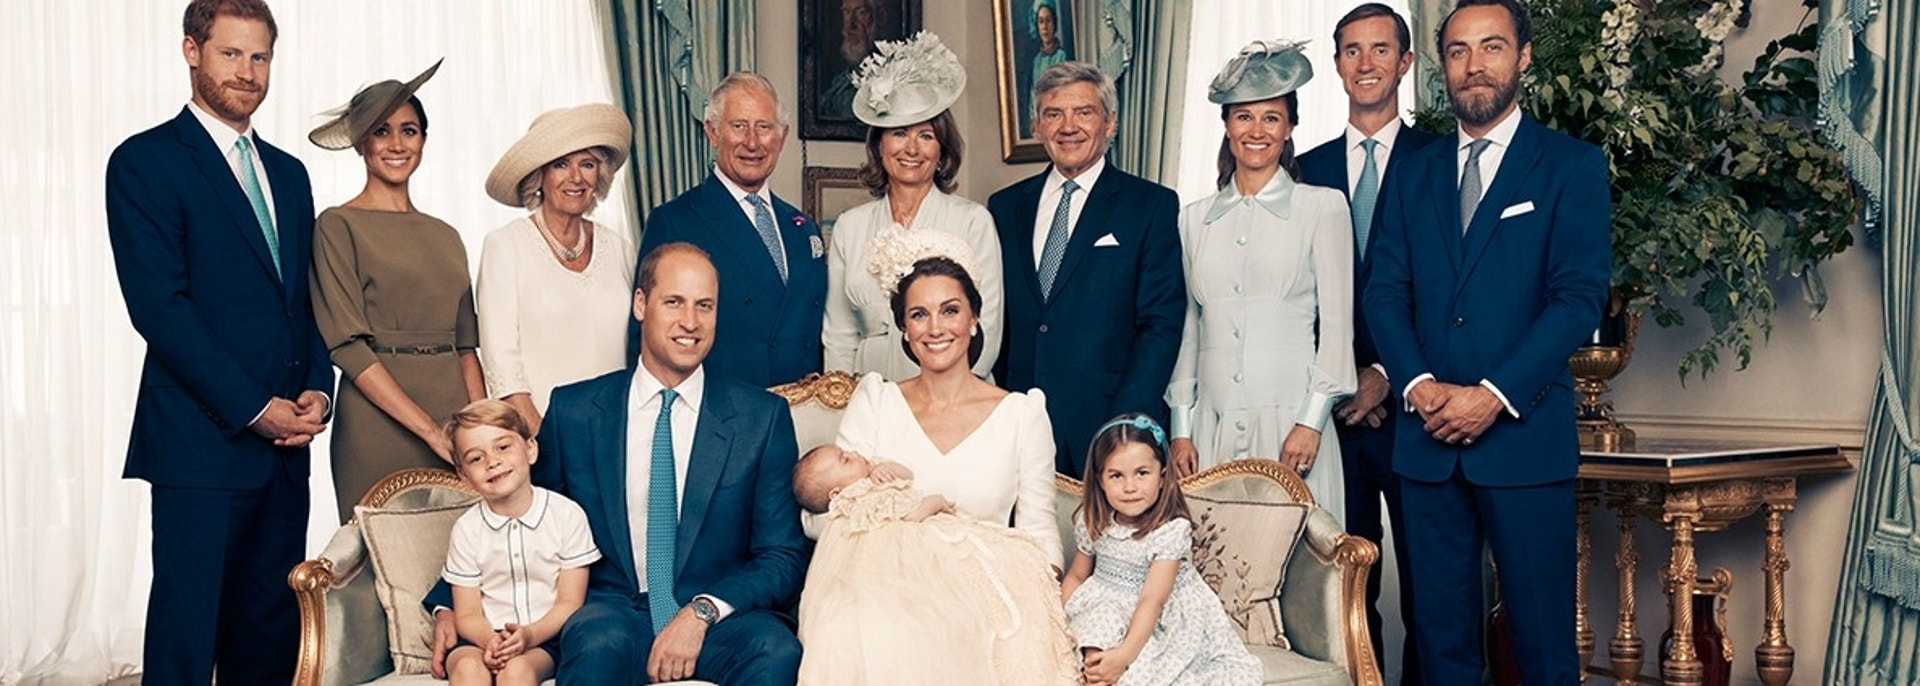 This Monday, July 9, 2018, photo provided by the Duke and Duchess of Cambridge shows the official photograph to mark the christening of Prince Louis at Clarence House, following Prince Louis' baptism, in London. Seated, left to right: Prince George, Prince William, the Duke of Cambridge; Prince Louis; Kate, the Duchess of Cambridge; and Princess Charlotte. Standing, left to right: Prince Harry, The Duke of Sussex; Megan, the Duchess of Sussex; Camilla, the Duchess of Cornwall; Prince Charles, Prince of Wales; Carole Middleton, Michael Middleton, Pippa Matthews, James Matthews and James Middleton. (Matt Holyoak/Camera Press/Duke and Duchess of Cambridge via AP)